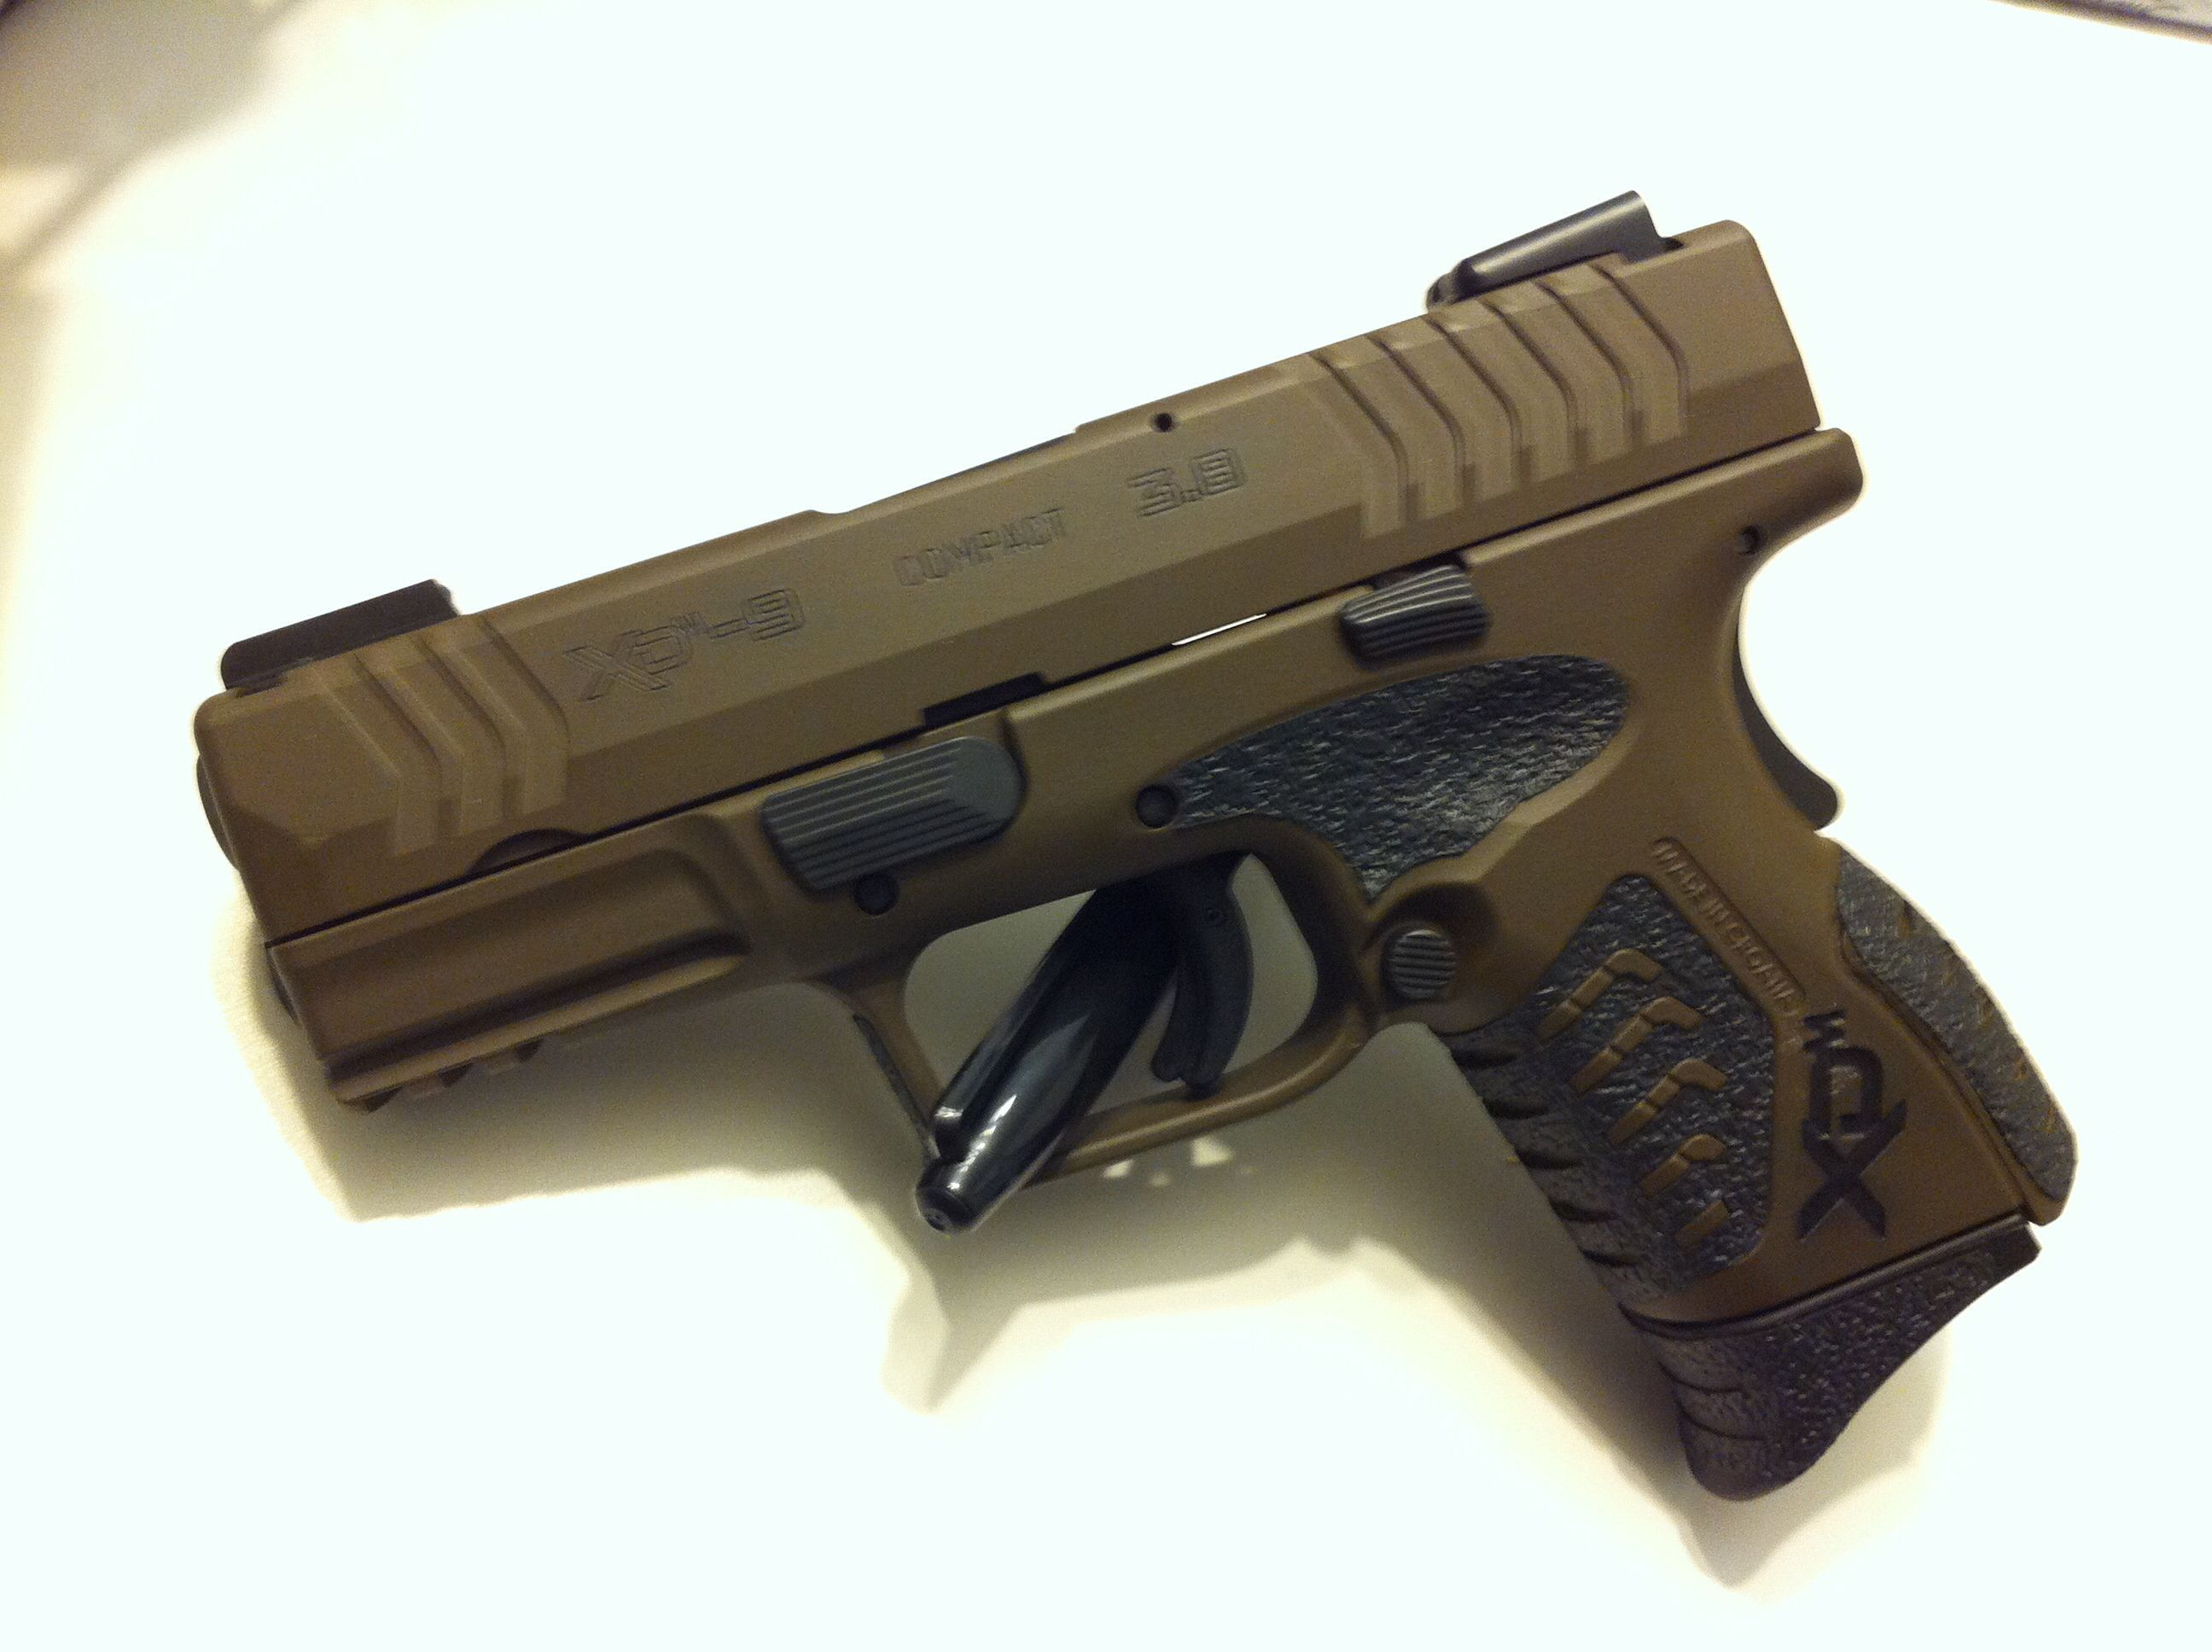 My Carry Piece Xdm Compact 9mm Cerakoted Patriot Brown